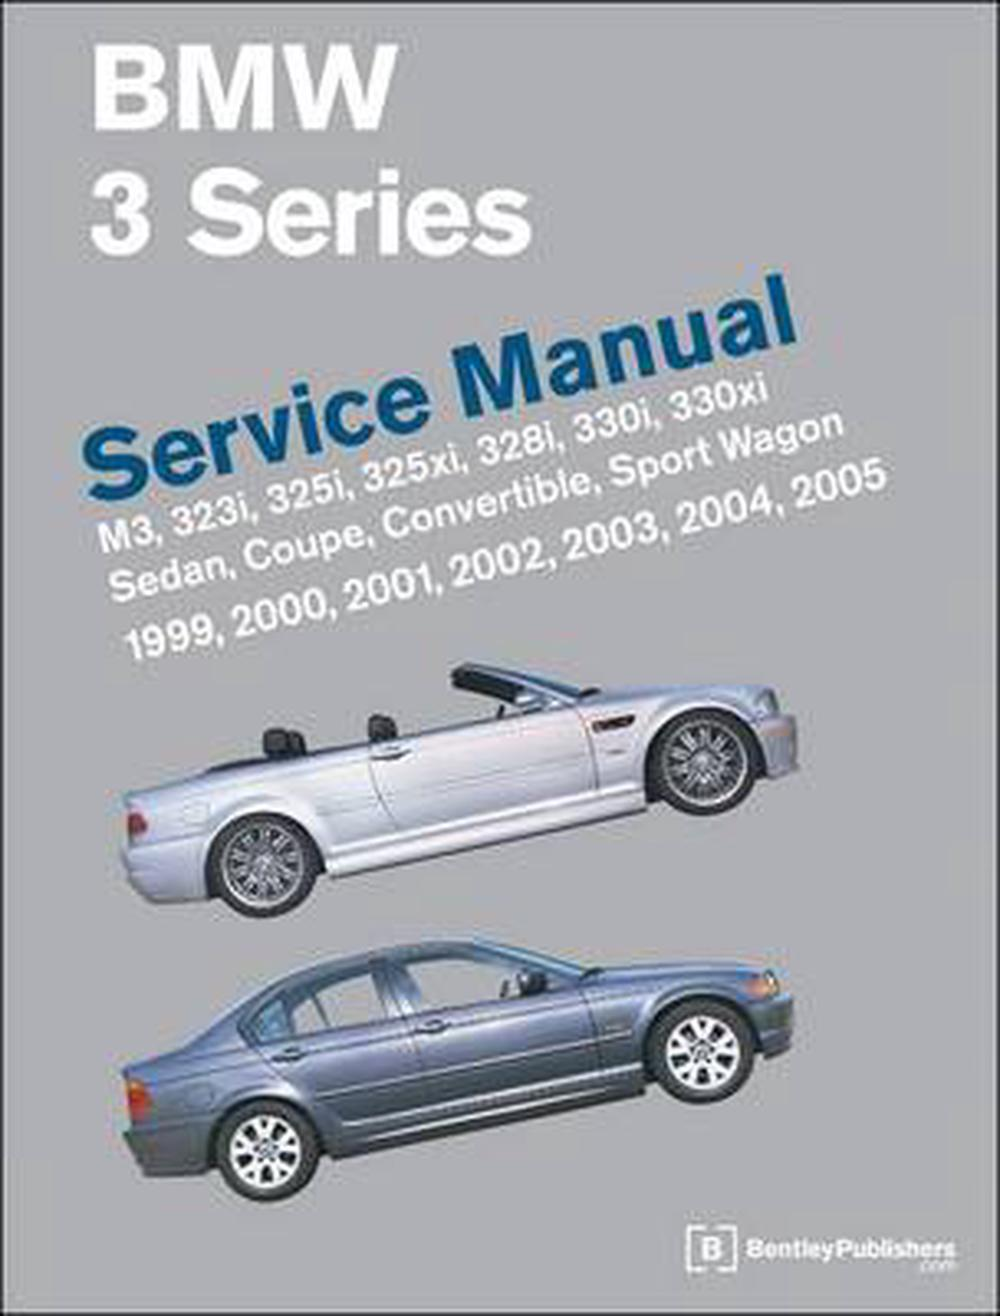 BMW 3 Series (E46) Service Manual: 1999, 2000, 2001, 2002, 2003, 2004, 2005:  M3, 323i, 325i, 325xi, 328i, 330i, 330xi, Sedan, Coupe, Convertible, Spor